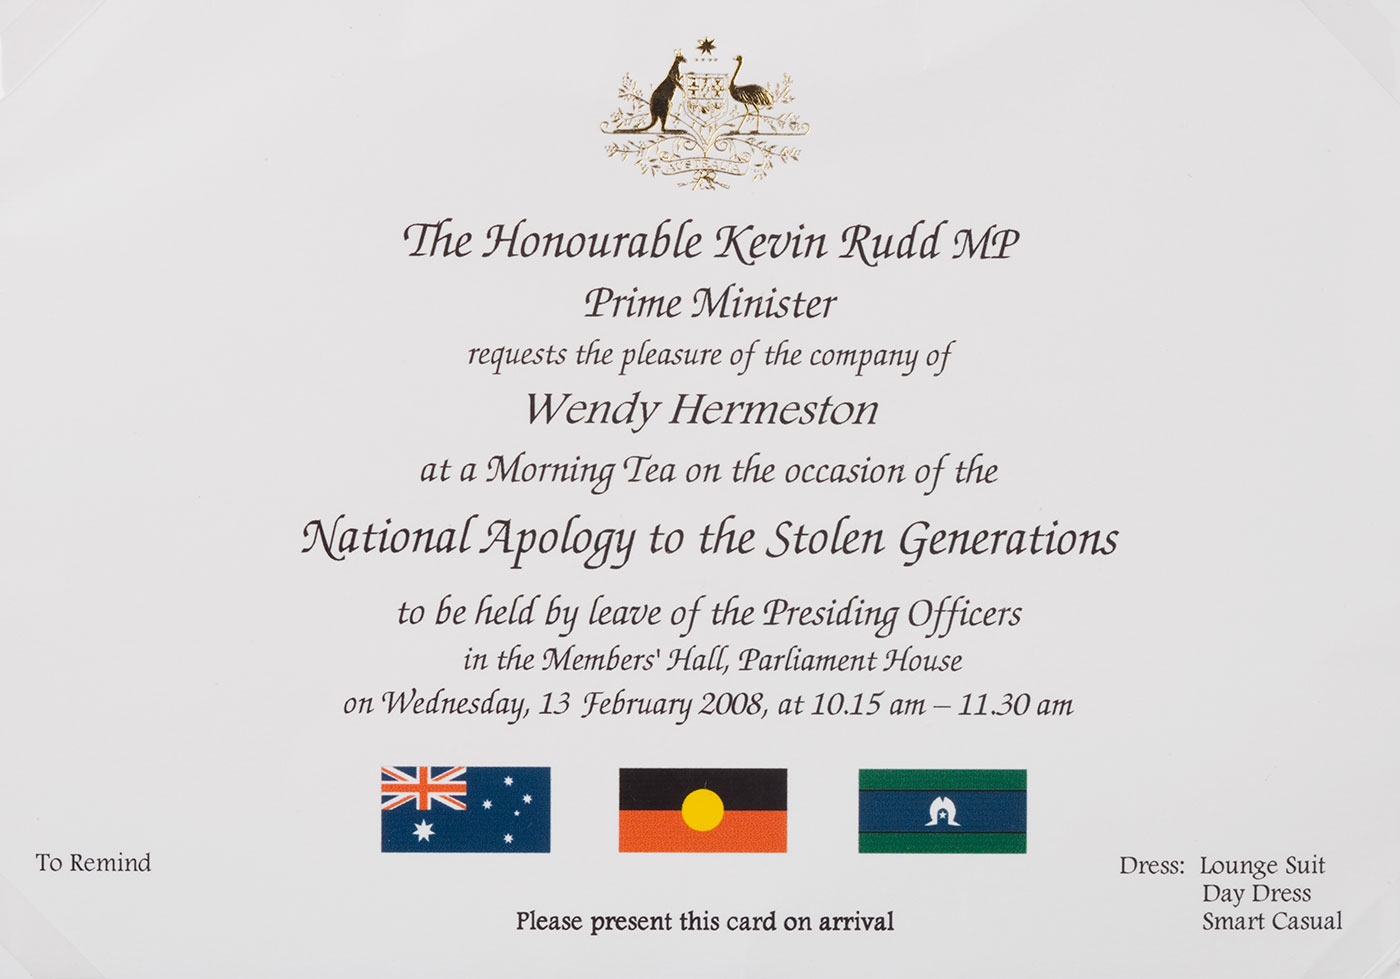 An invitation from The Honourable Kevin Rudd MP to Wendy Hermeston to attend a morning tea on Wednesday 13 February 2008 on the occasion of the National Apology to the Stolen Generations. The card features images of the Australian coat of arms at the top and the Australian, Aboriginal and Torres Strait Islander flags at the bottom. - click to view larger image